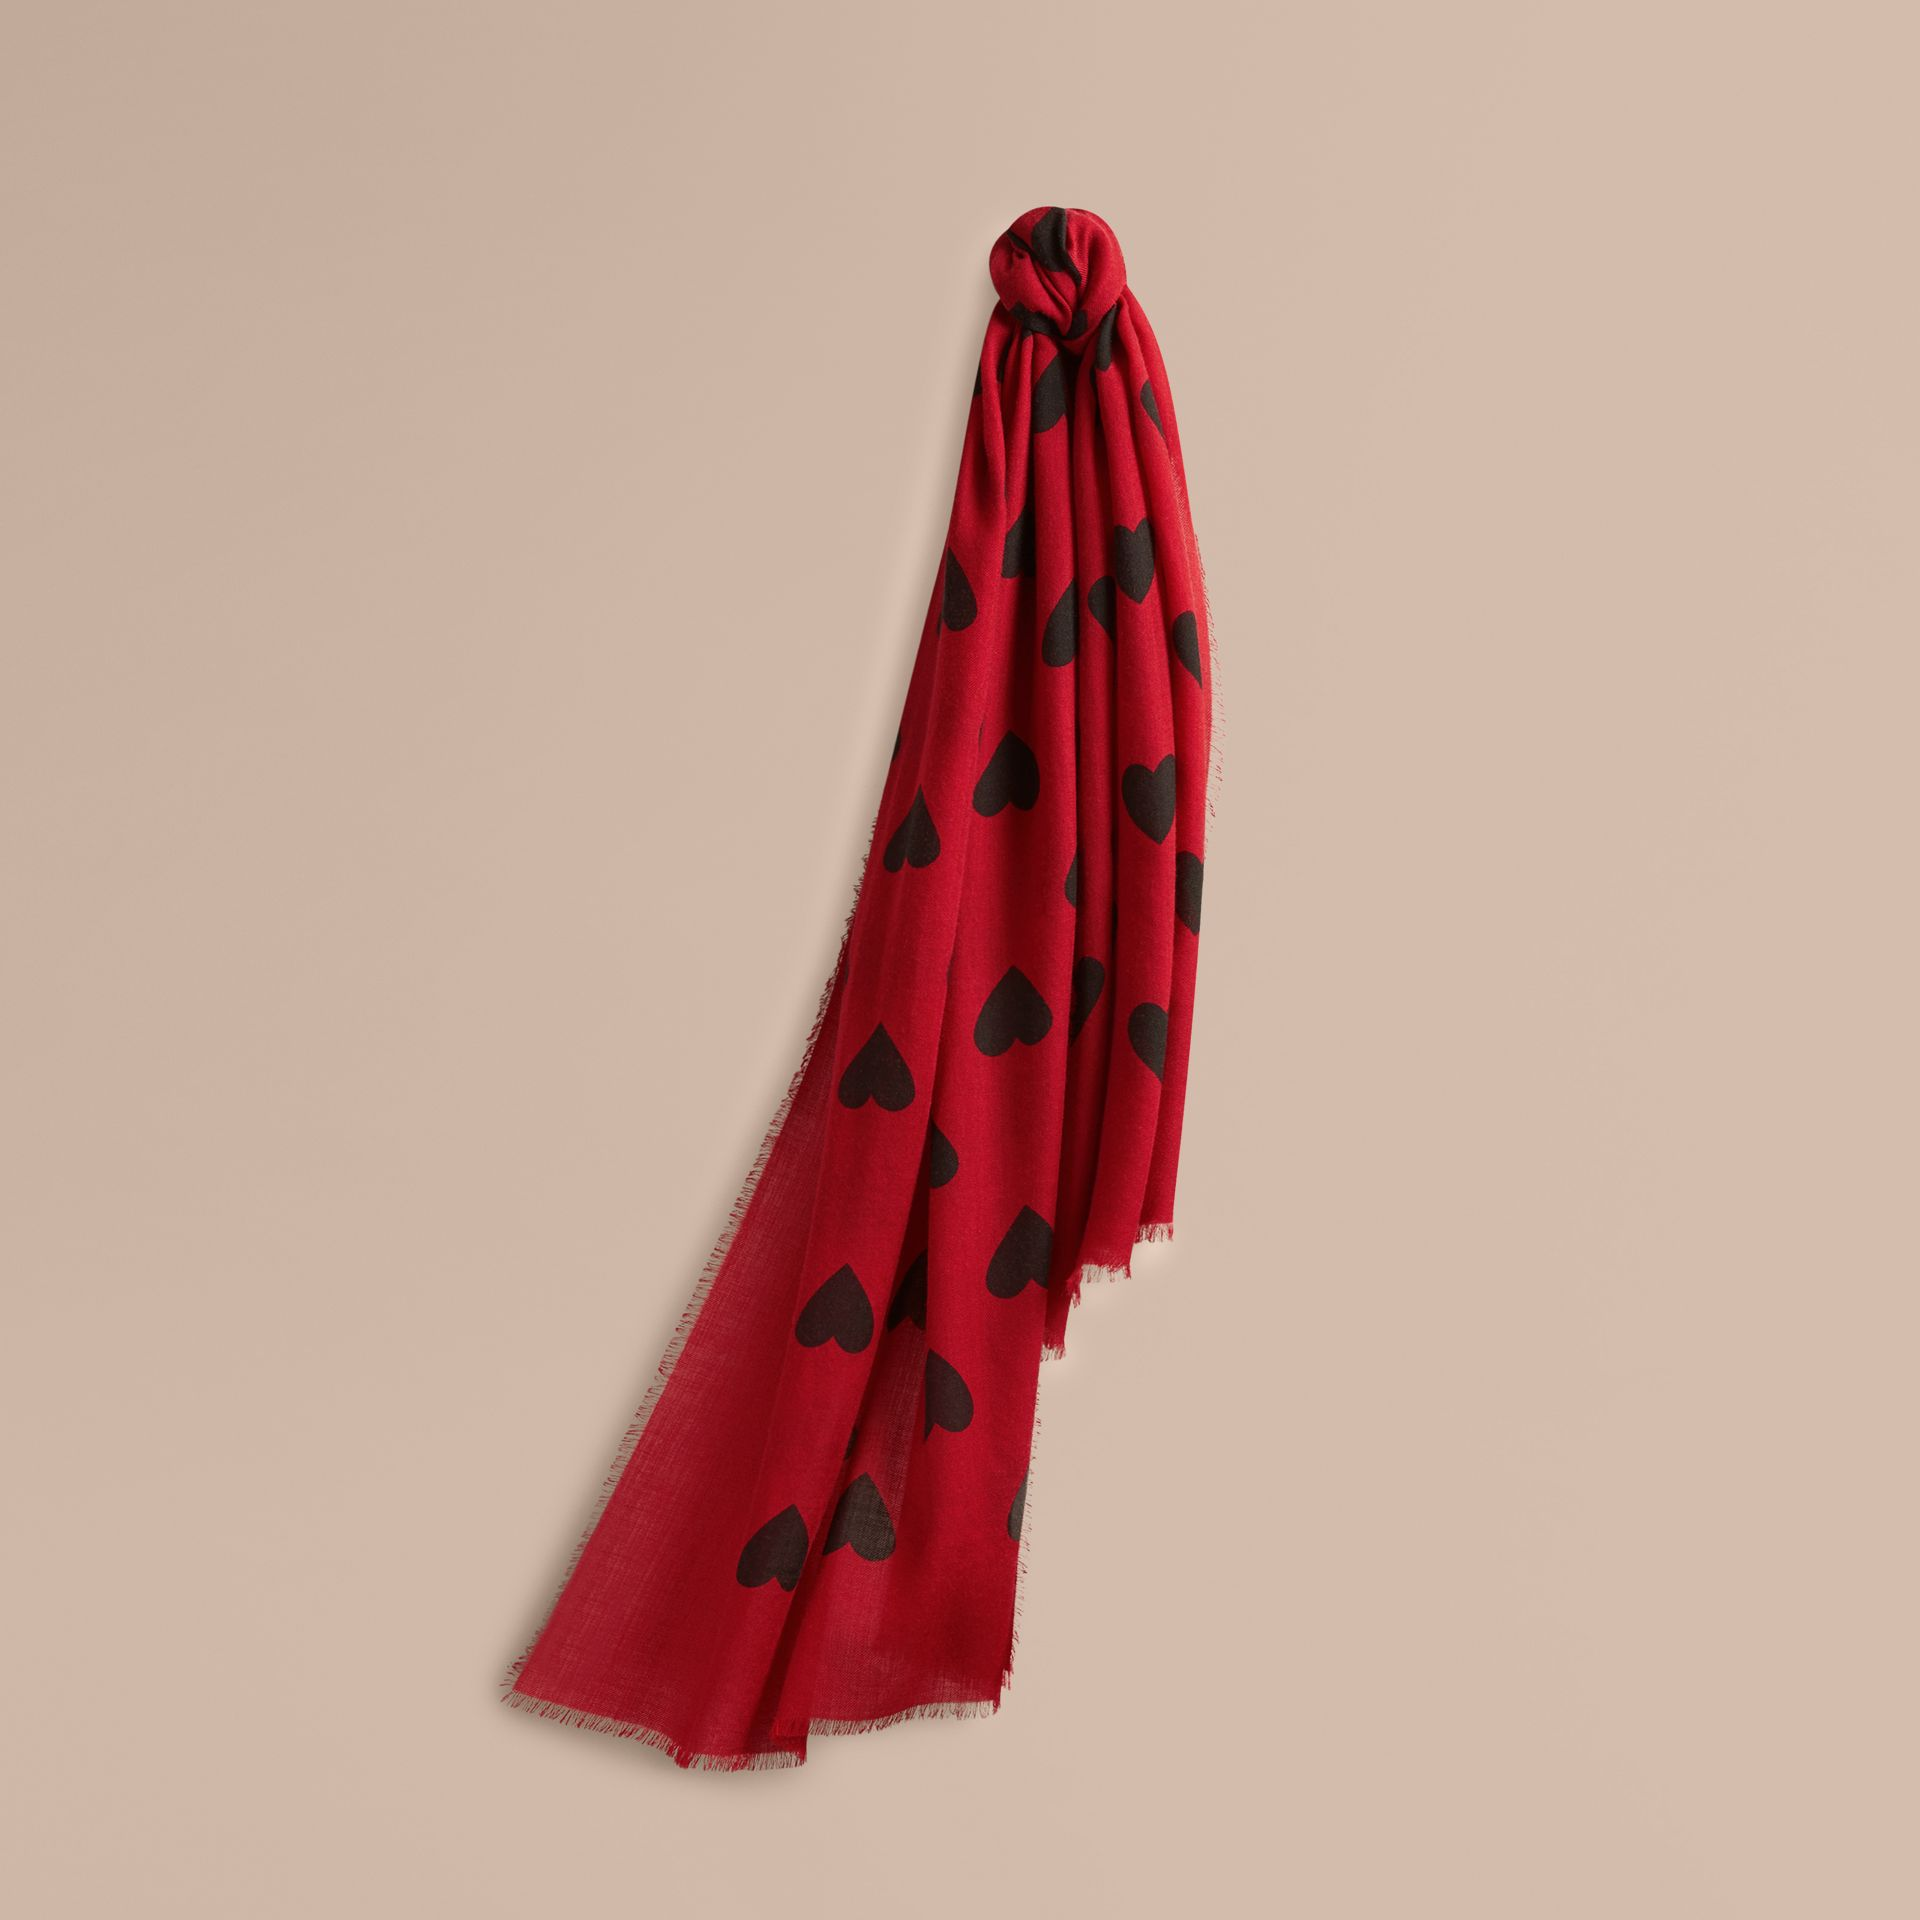 Parade red/black The Lightweight Cashmere Scarf in Heart Print Parade Red/black - gallery image 6